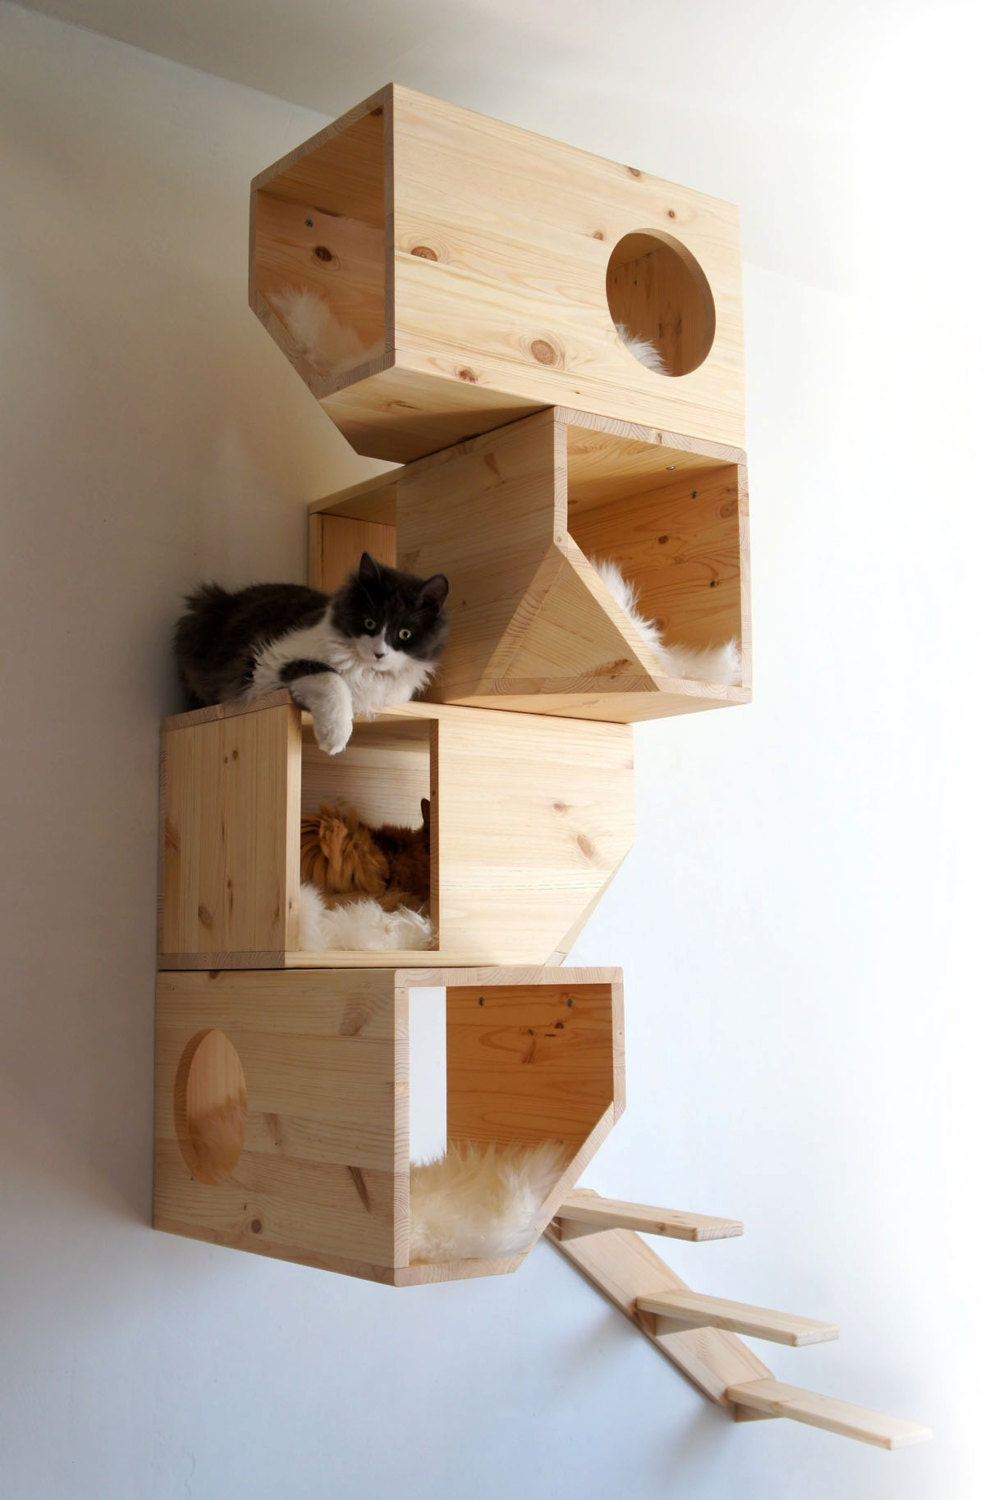 Wooden modular cat house - Casas para gatos de madera ...